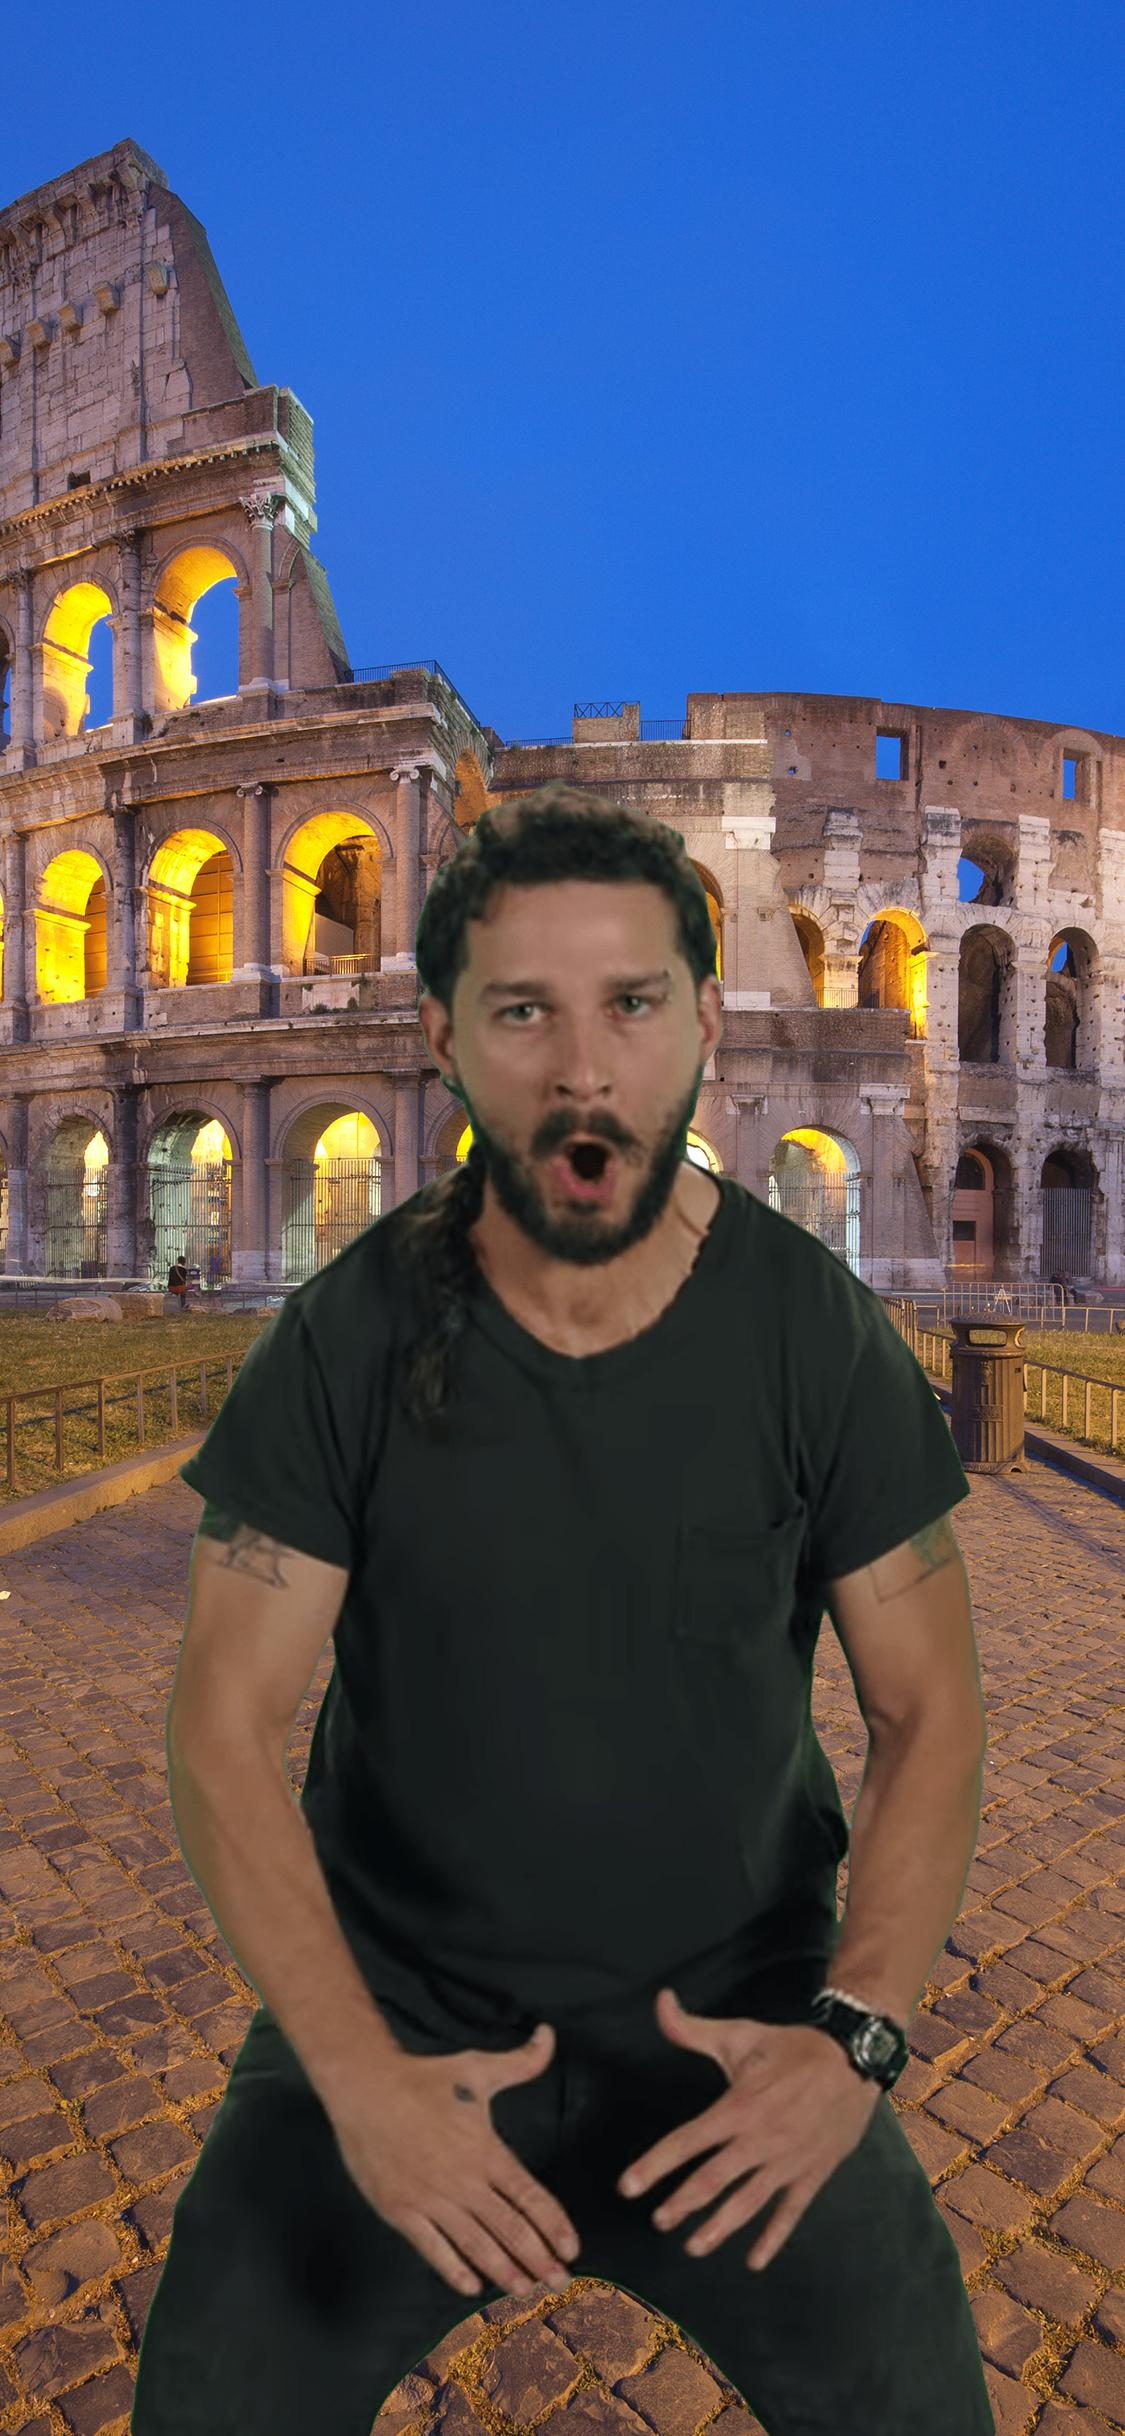 [Image] My wife and I are going to Rome in a few months and I'm trying to lose some weight before. I made myself a wallpaper for my phone to keep me on track.